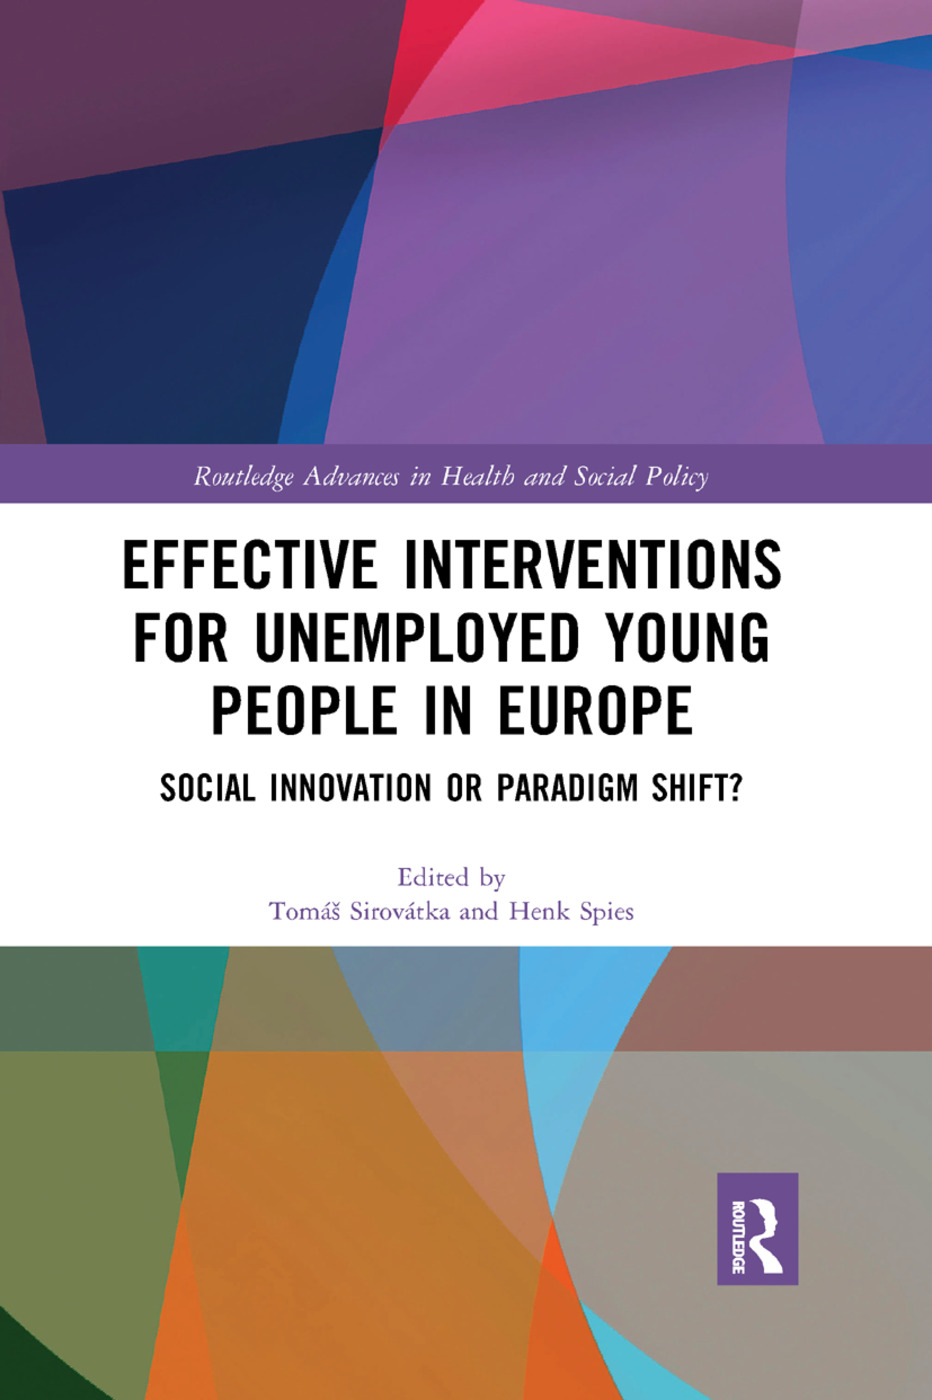 Effective Interventions for Unemployed Young People in Europe: Social Innovation or Paradigm Shift? book cover